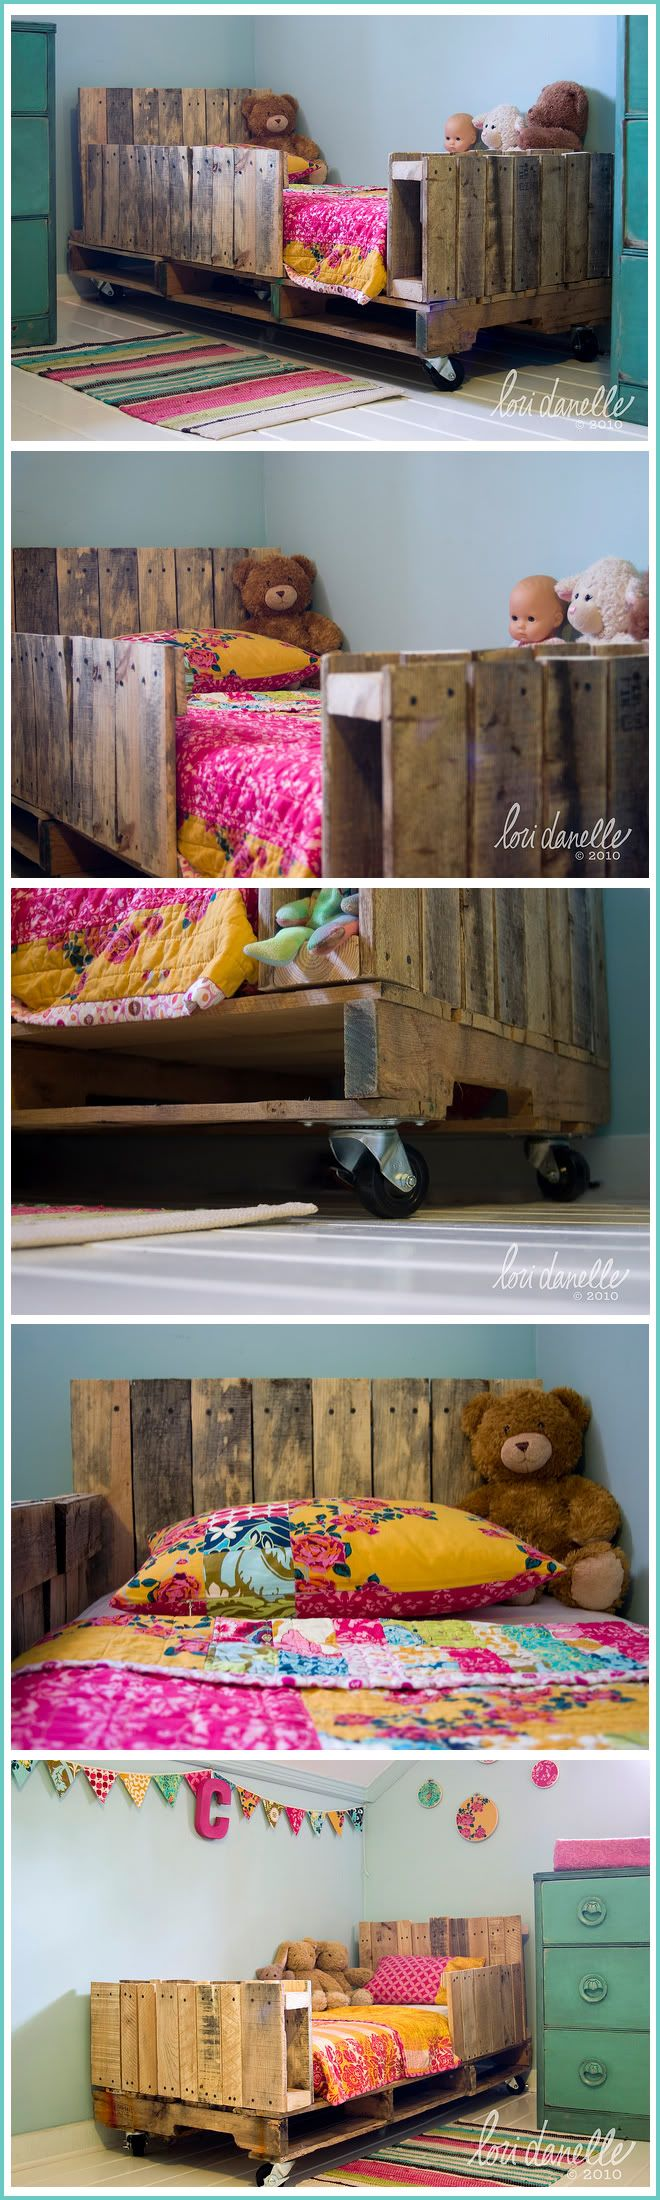 Pallet bedroom furniture plans - House 09 Blog Mom A Little Girl Bed Made Out Of Pallets Just For